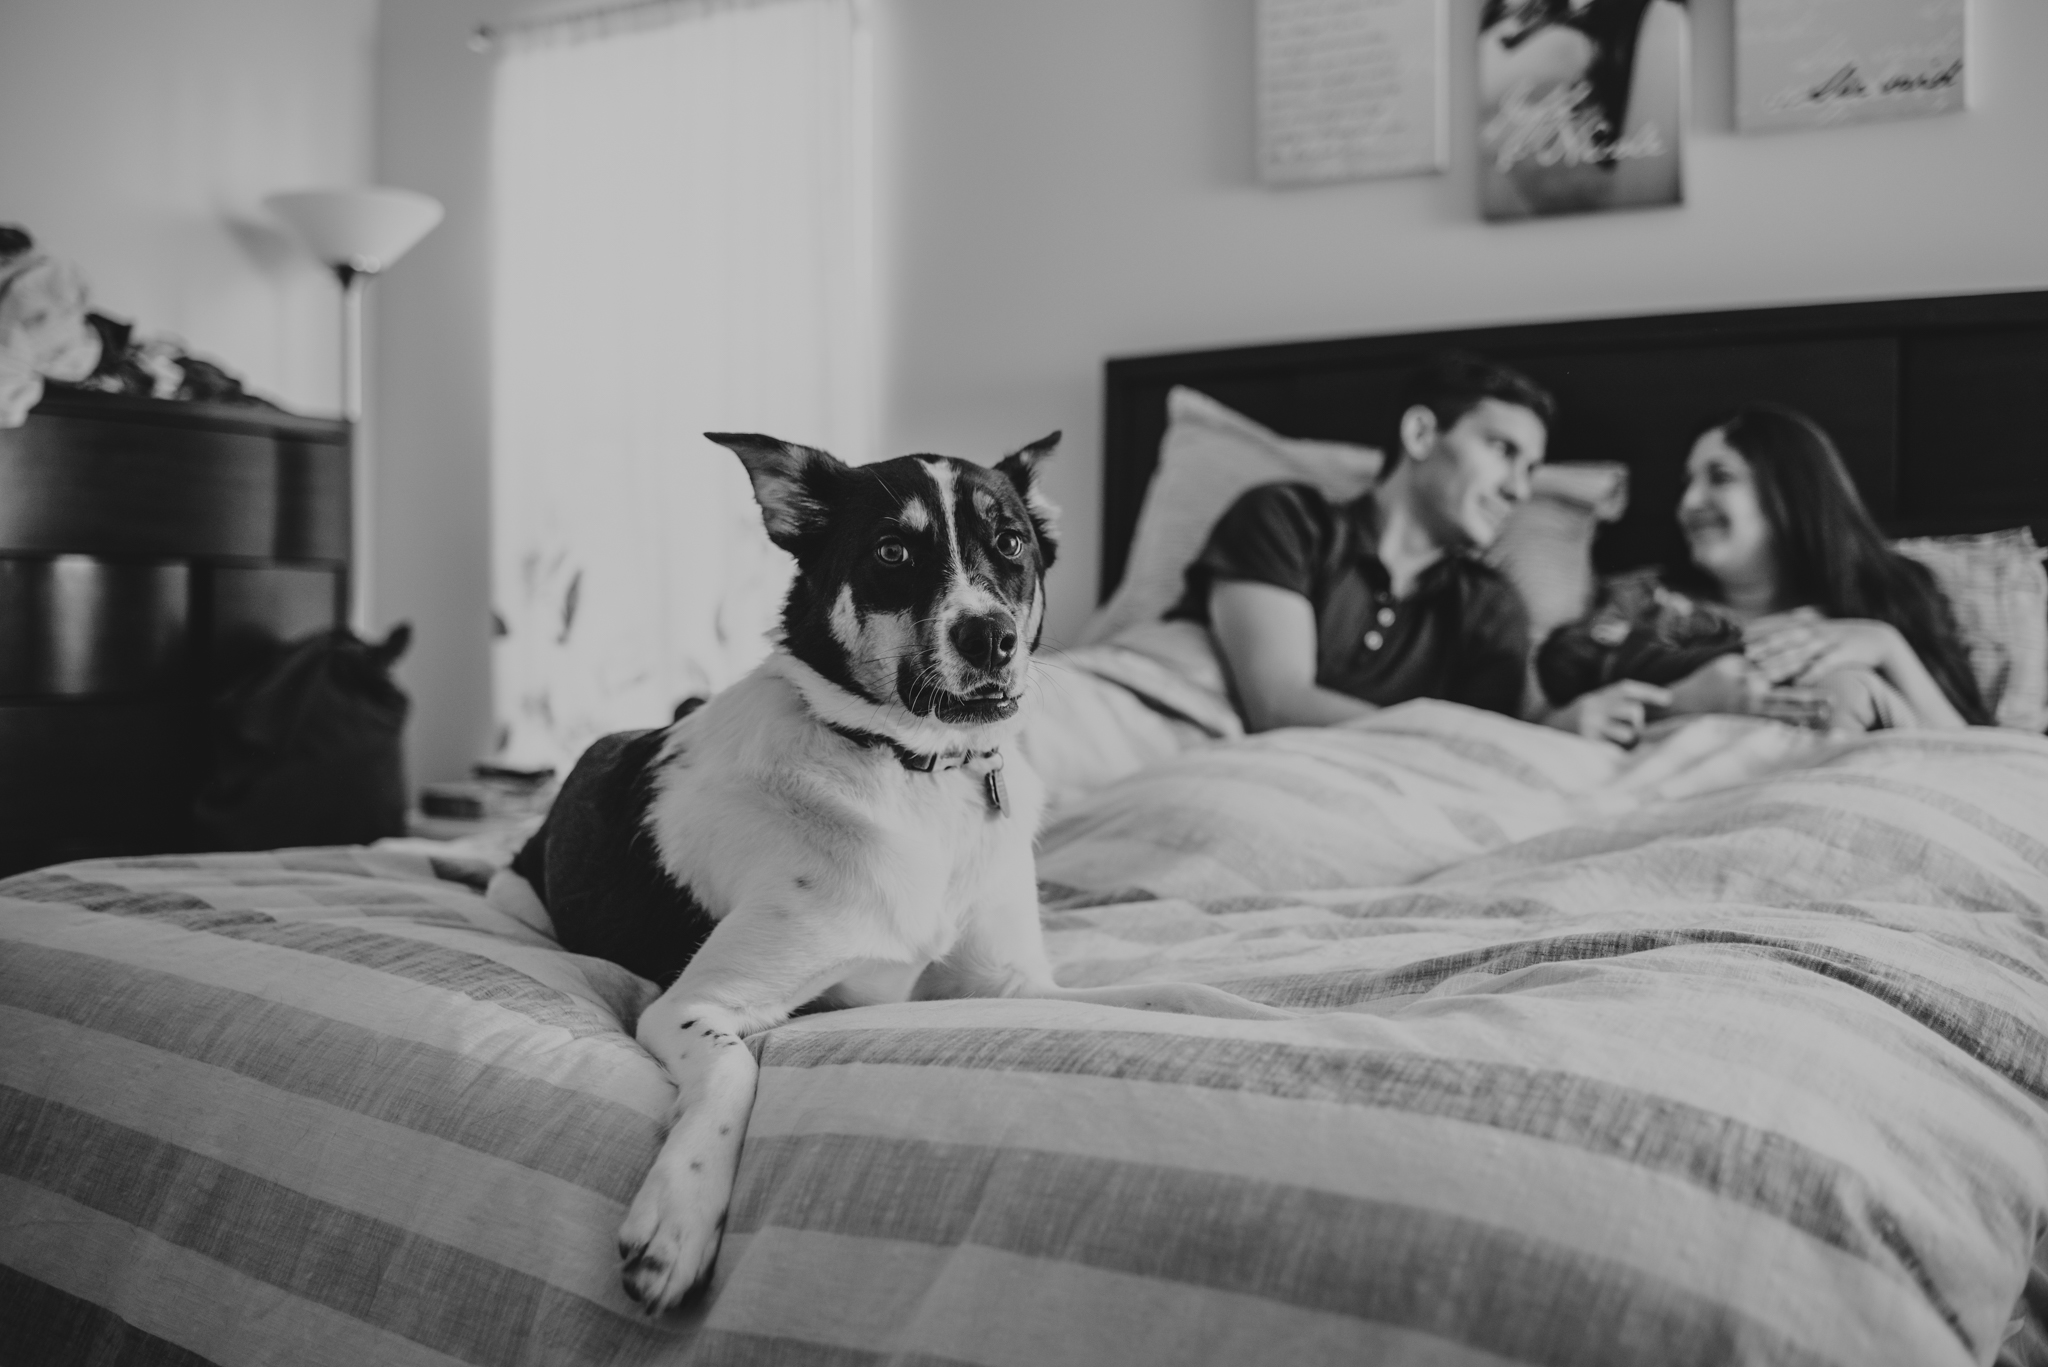 The new family snuggles with their newborn son in bed while their dog stands guard in Wake Forest, a black and white image by Rose Trail Images.